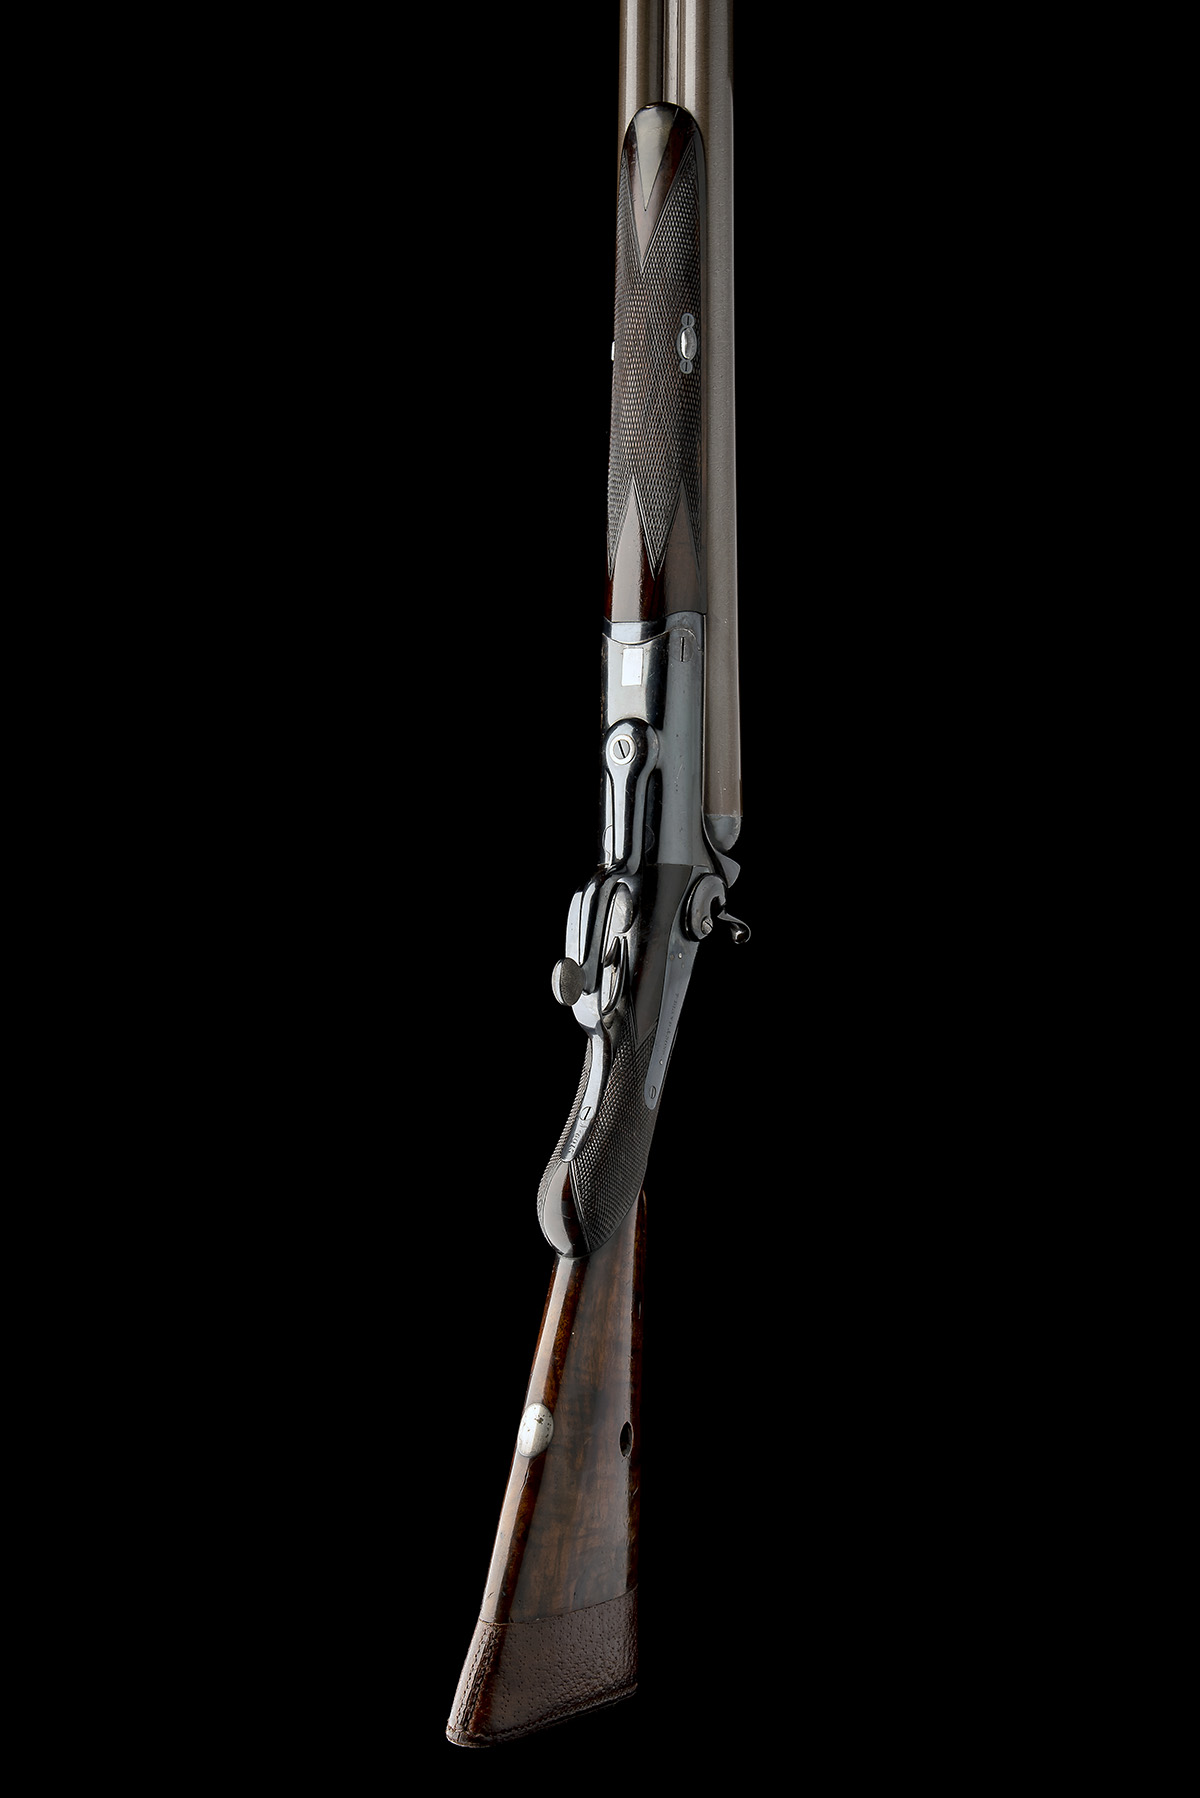 T. BLAND & SONS AN IMPRESSIVE 4-BORE DOUBLE-BARRELLED ROTARY-UNDERLEVER HAMMERGUN, serial no. - Image 3 of 10